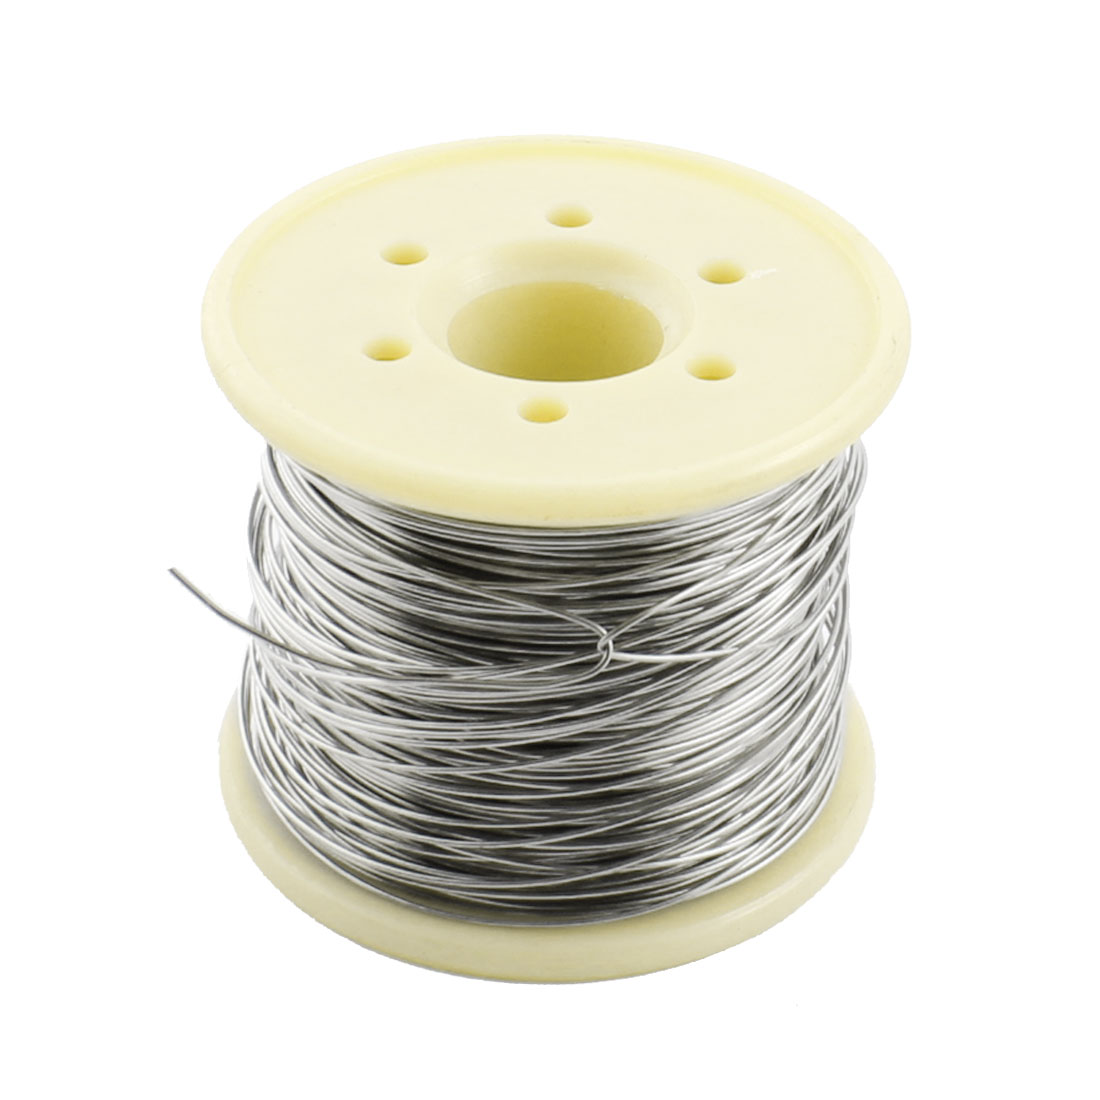 30meter 100ft 0.6mm Diameter AWG23 Nichrome Resistance Heating Coils Resistor Wire for Frigidaire Heater